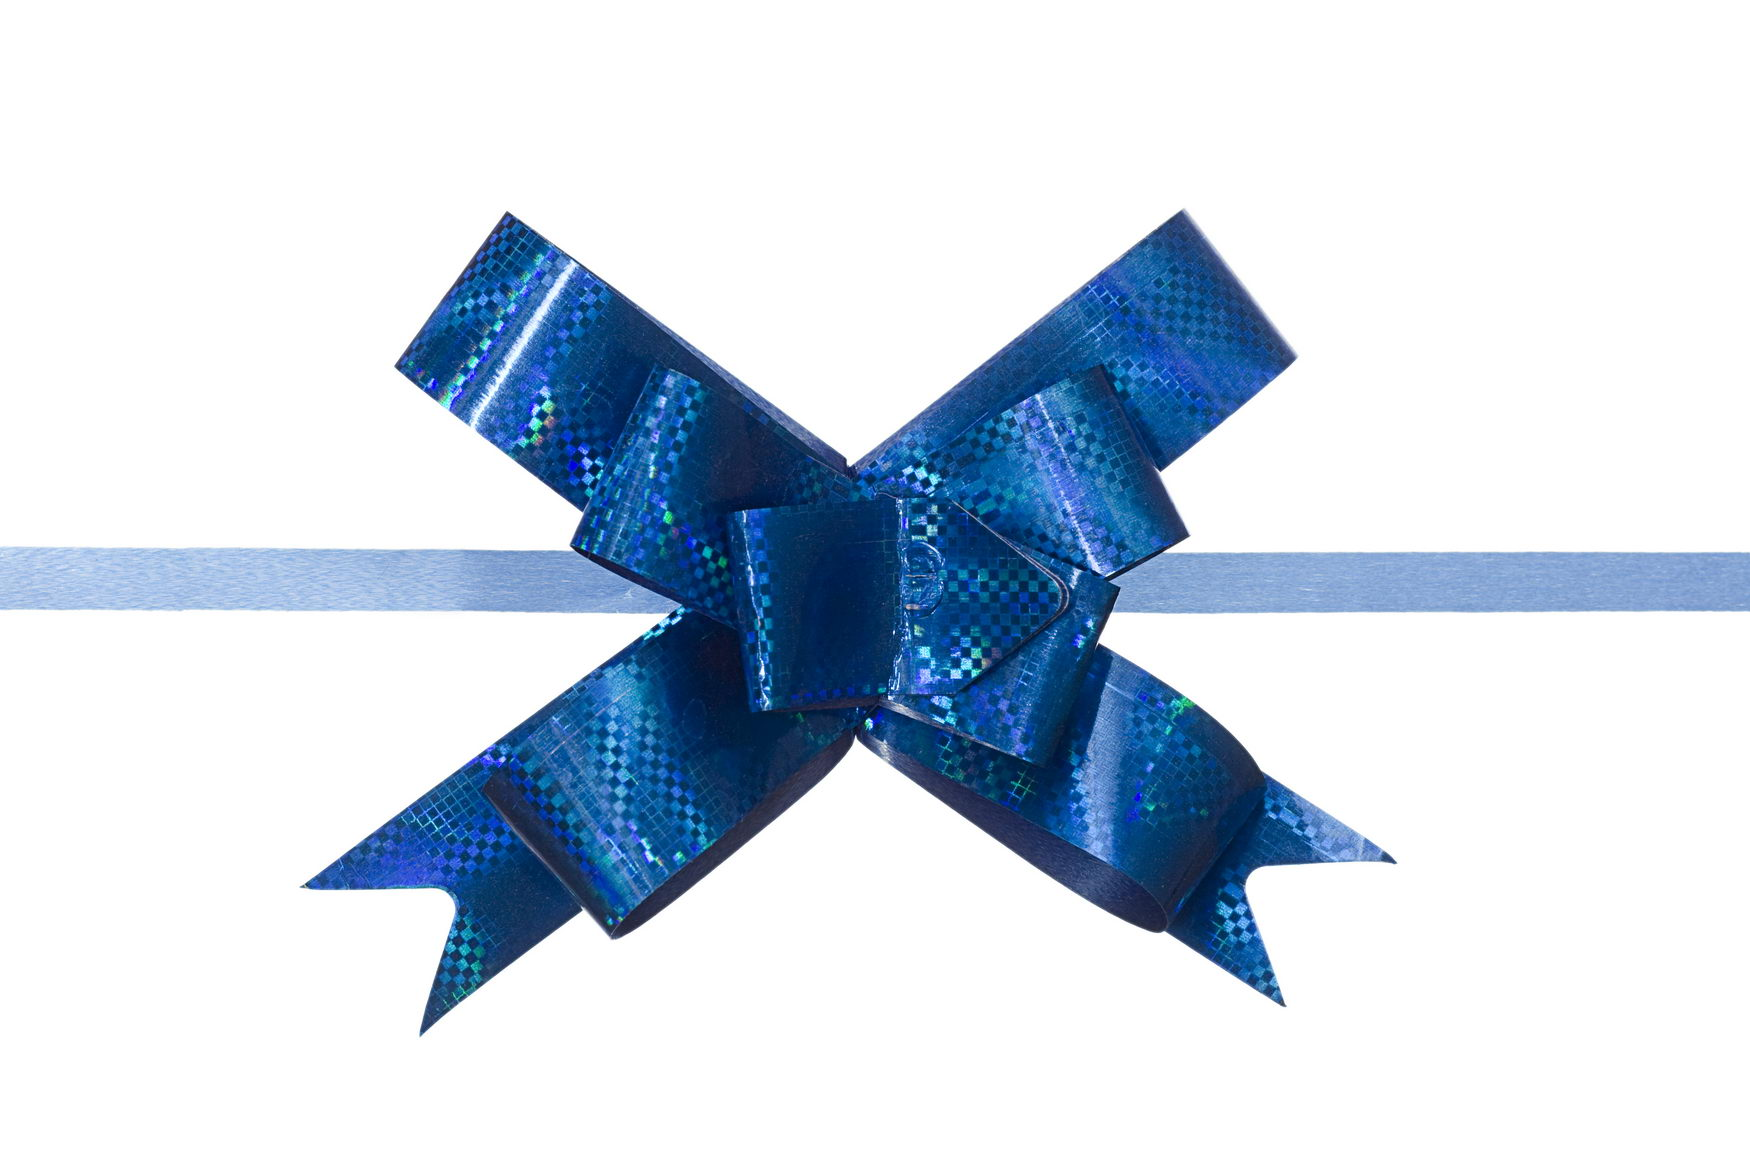 blue bow, Ribbon, Present, Party, Package, HQ Photo